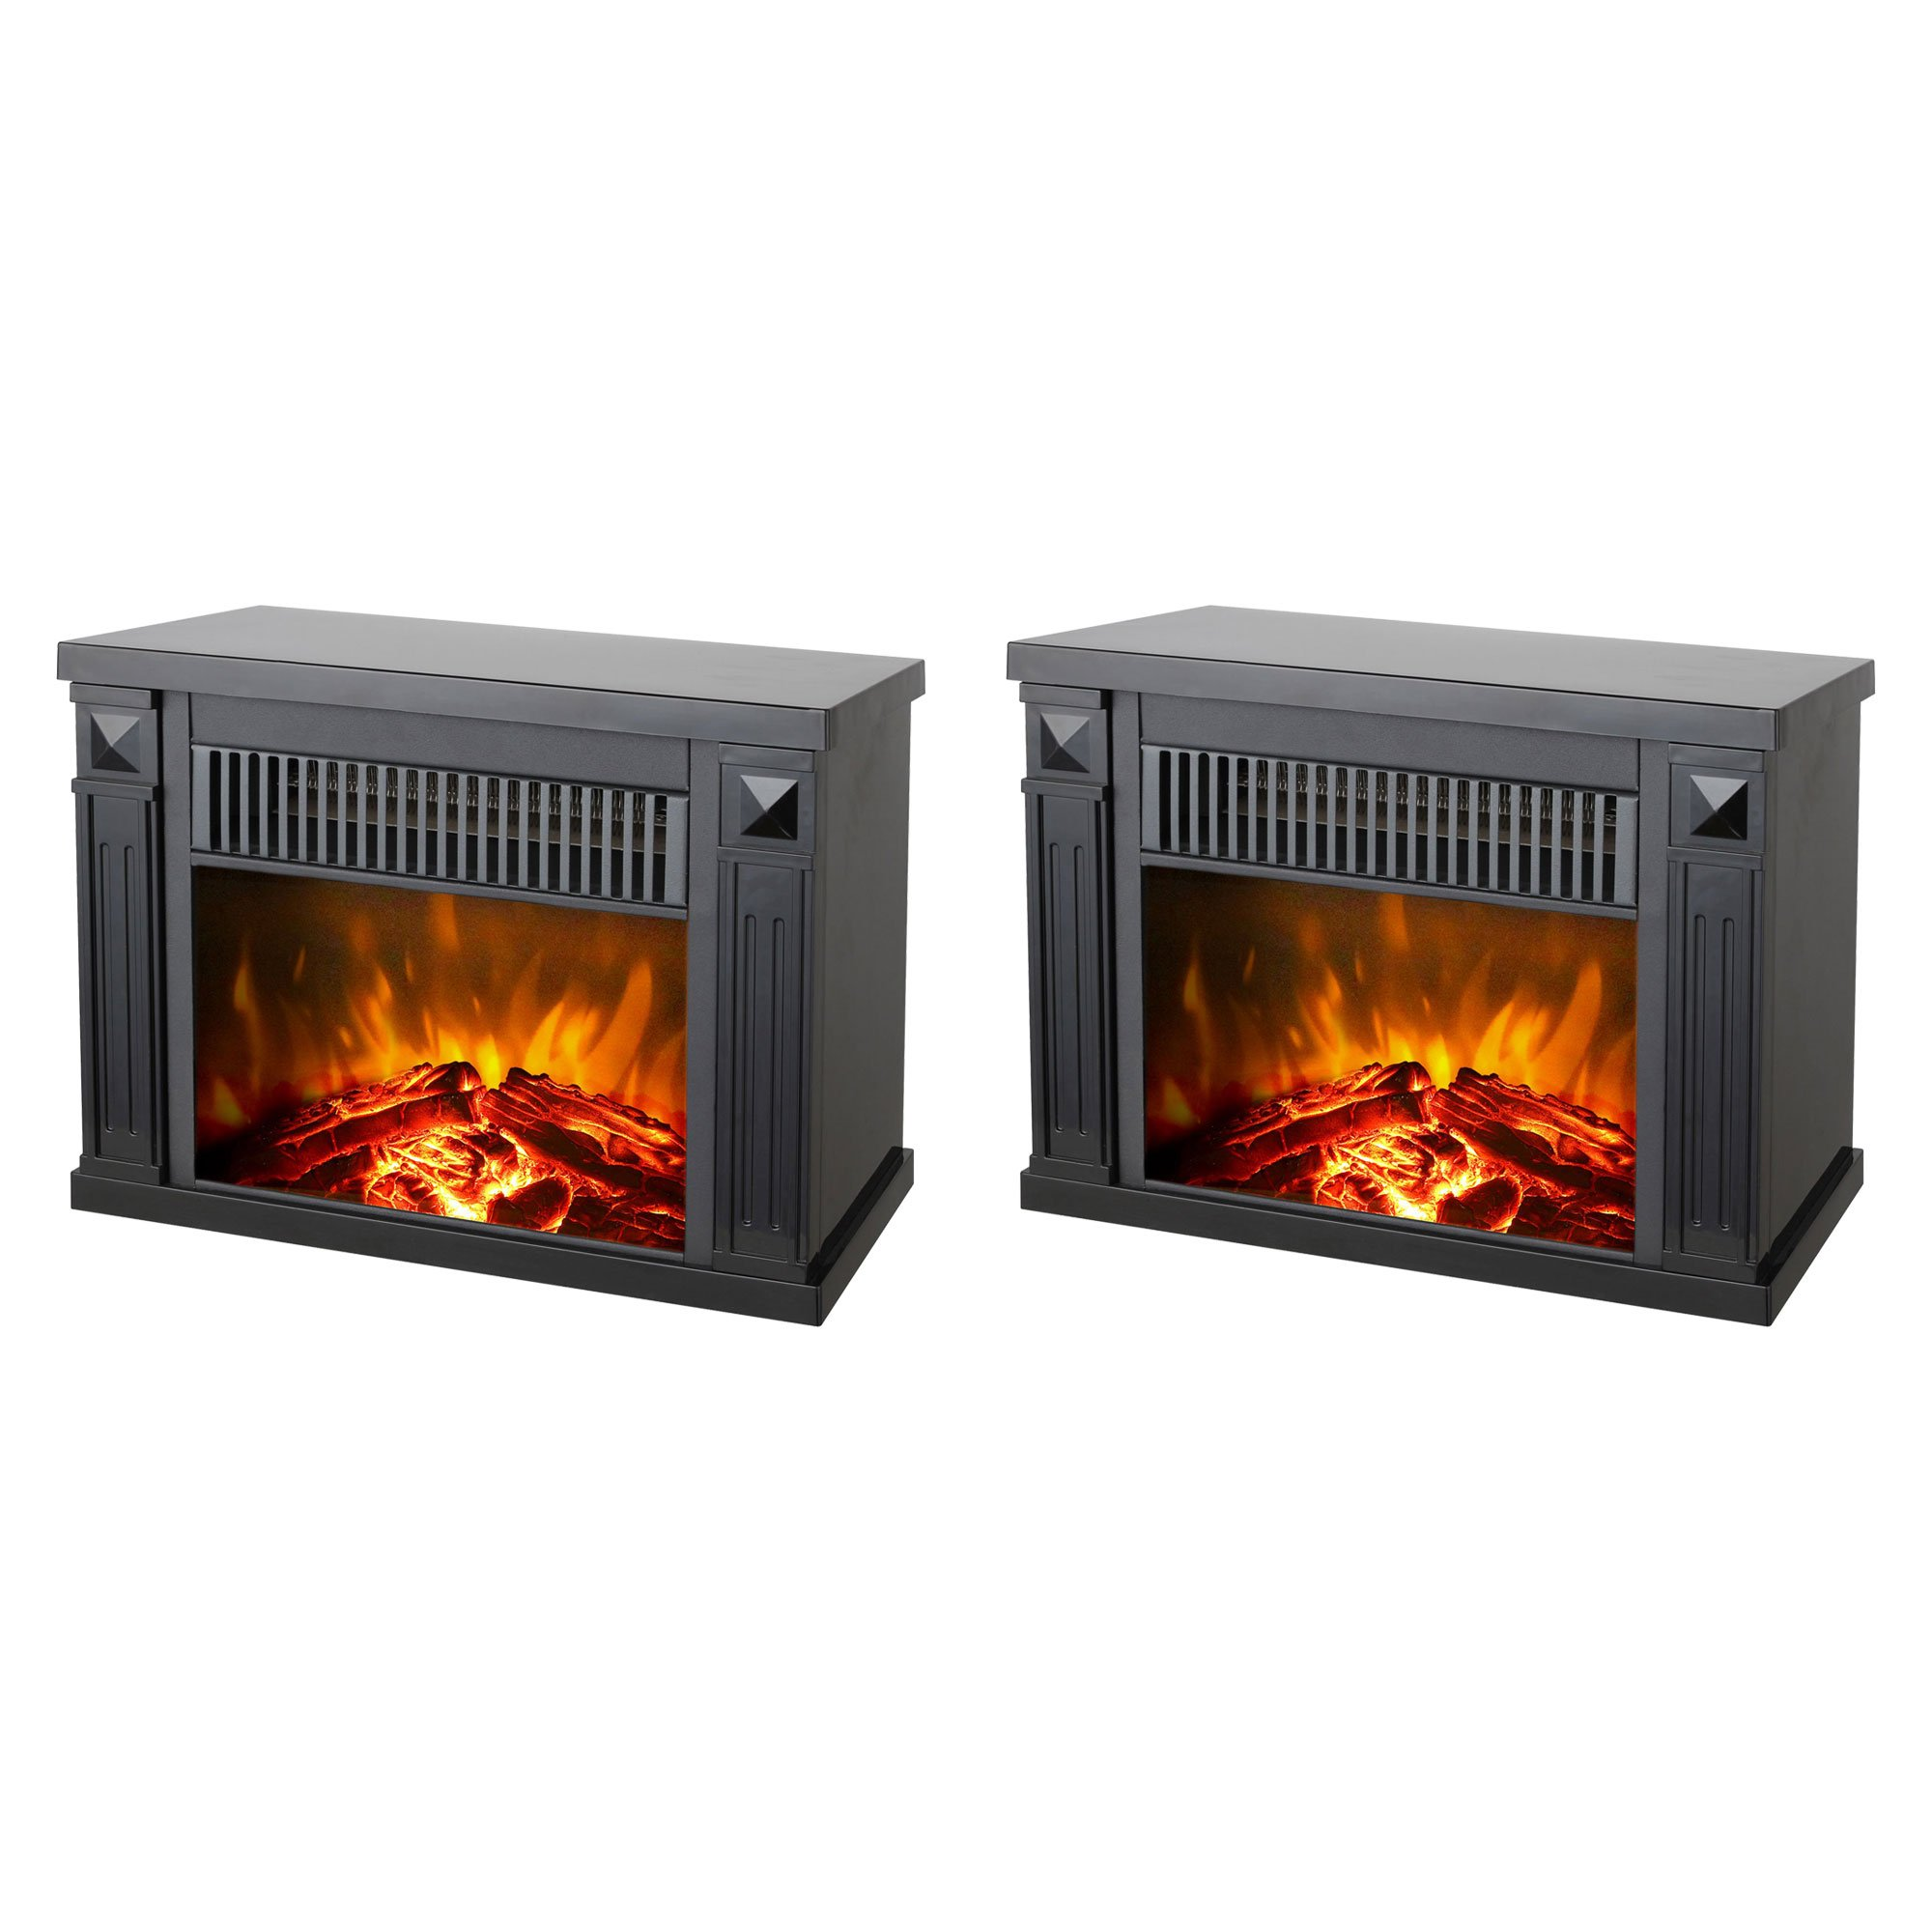 Konwin Small Electric Tabletop Artificial Faux Fireplace Space